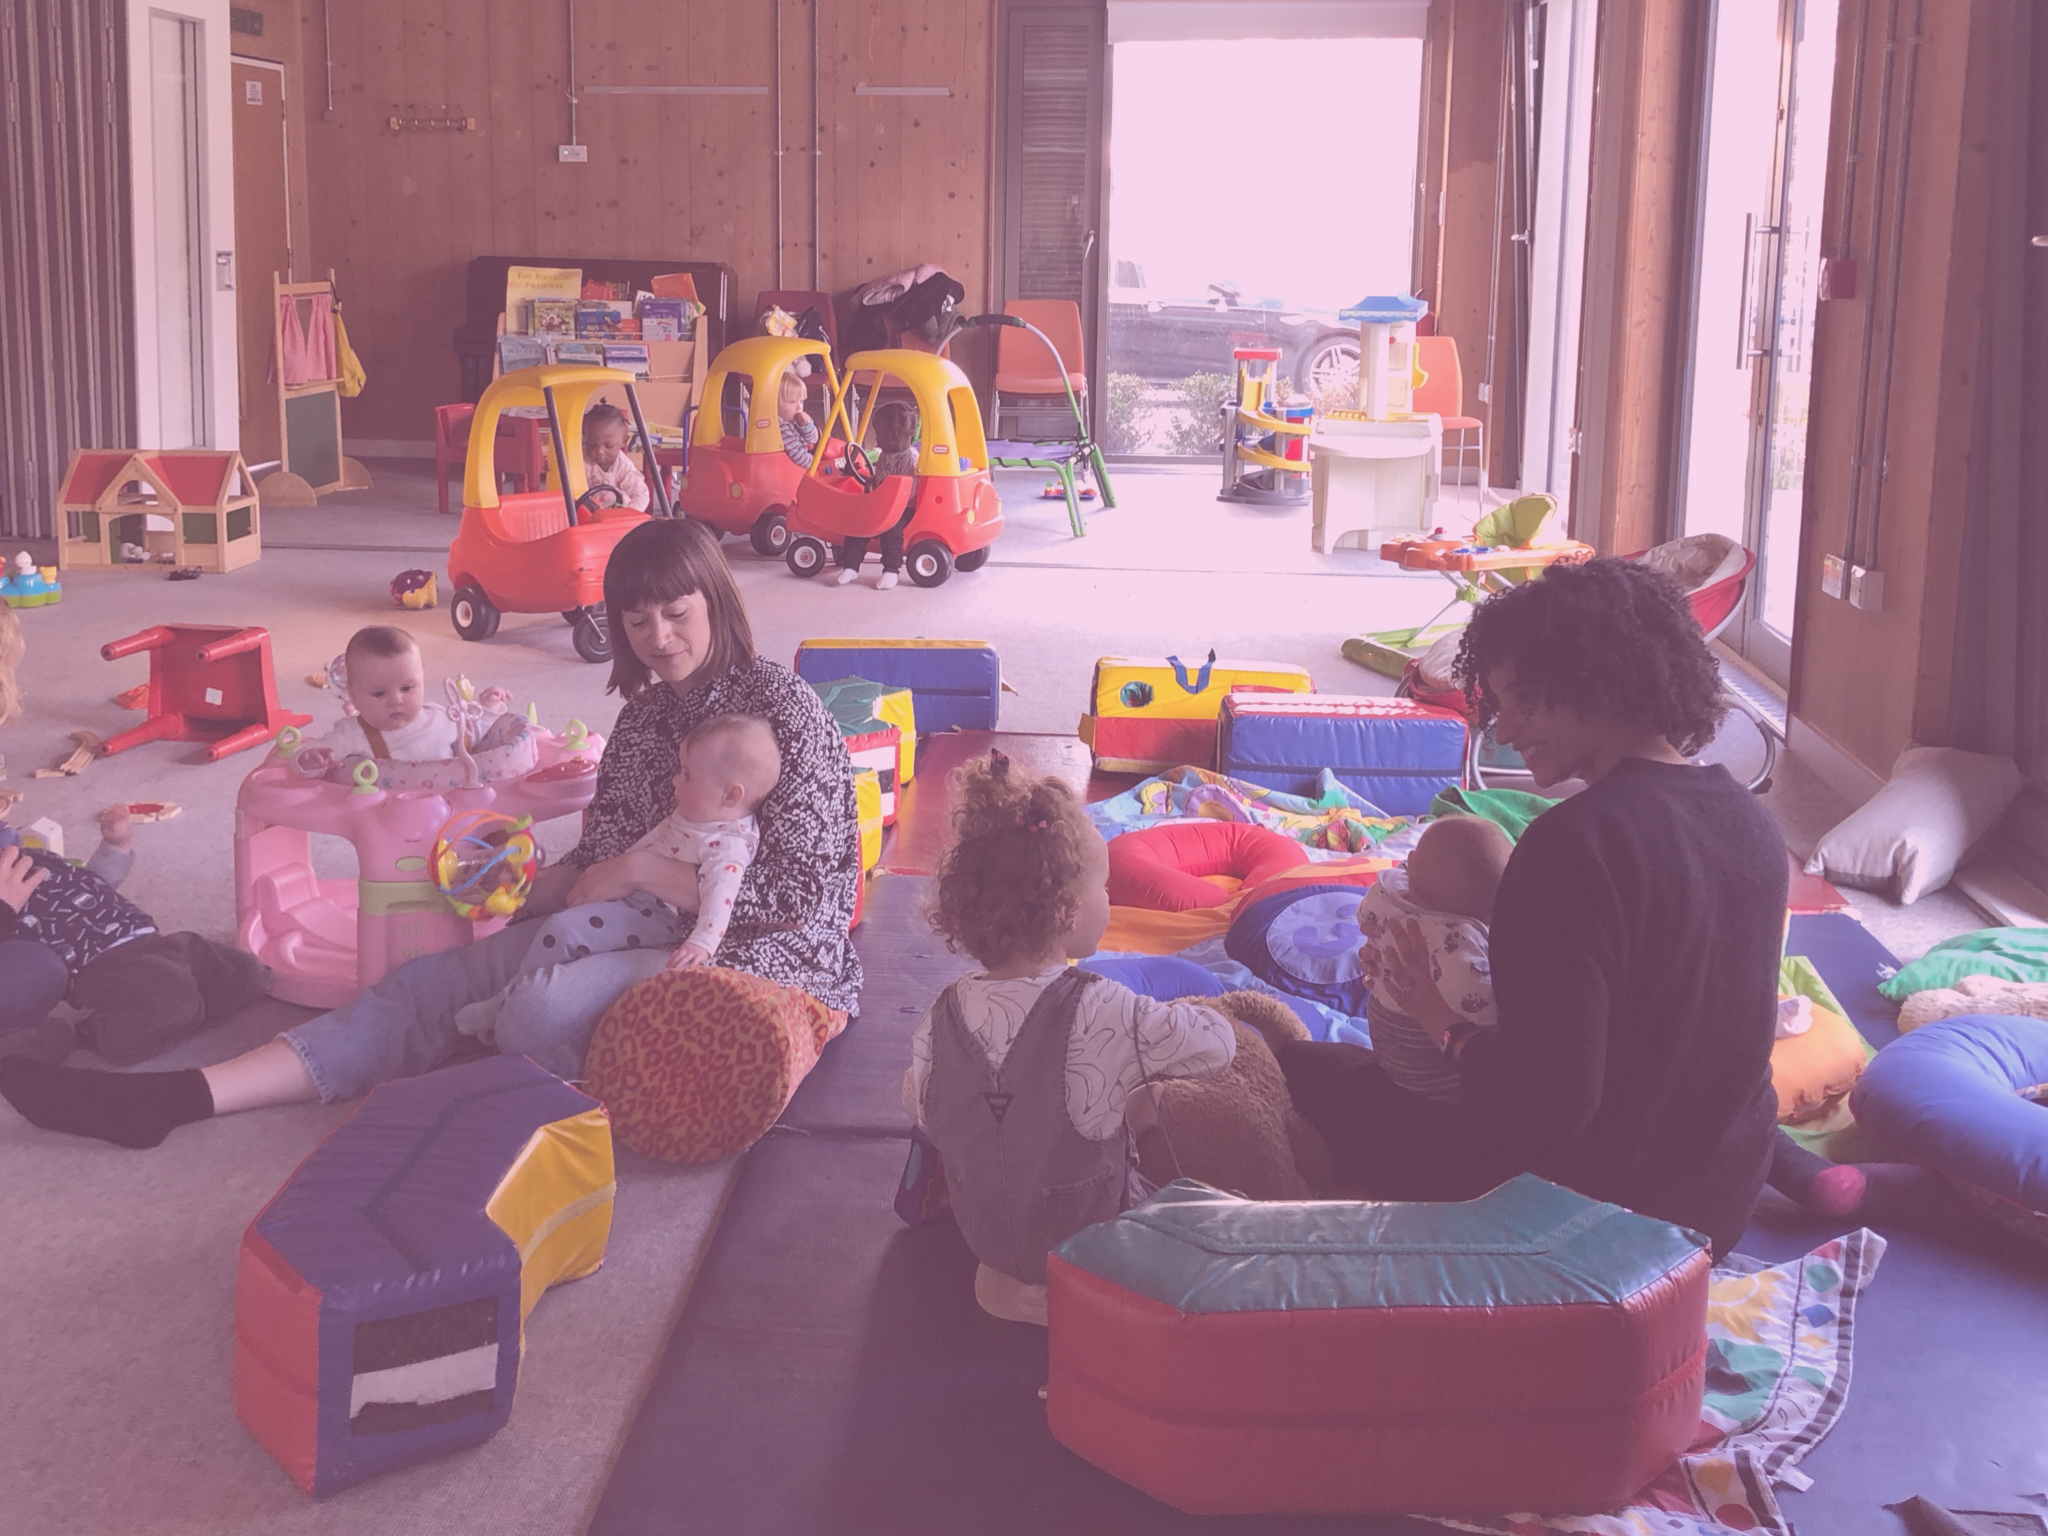 come to our playgroup - When you feel ready, come to our weekly meet up, with mats and cushions for brand-new babies, toys and books for toddlers, and -crucially- caffeine for parents: 10.30-12.30 on Tuesdays at Frampton Park Baptist Church.